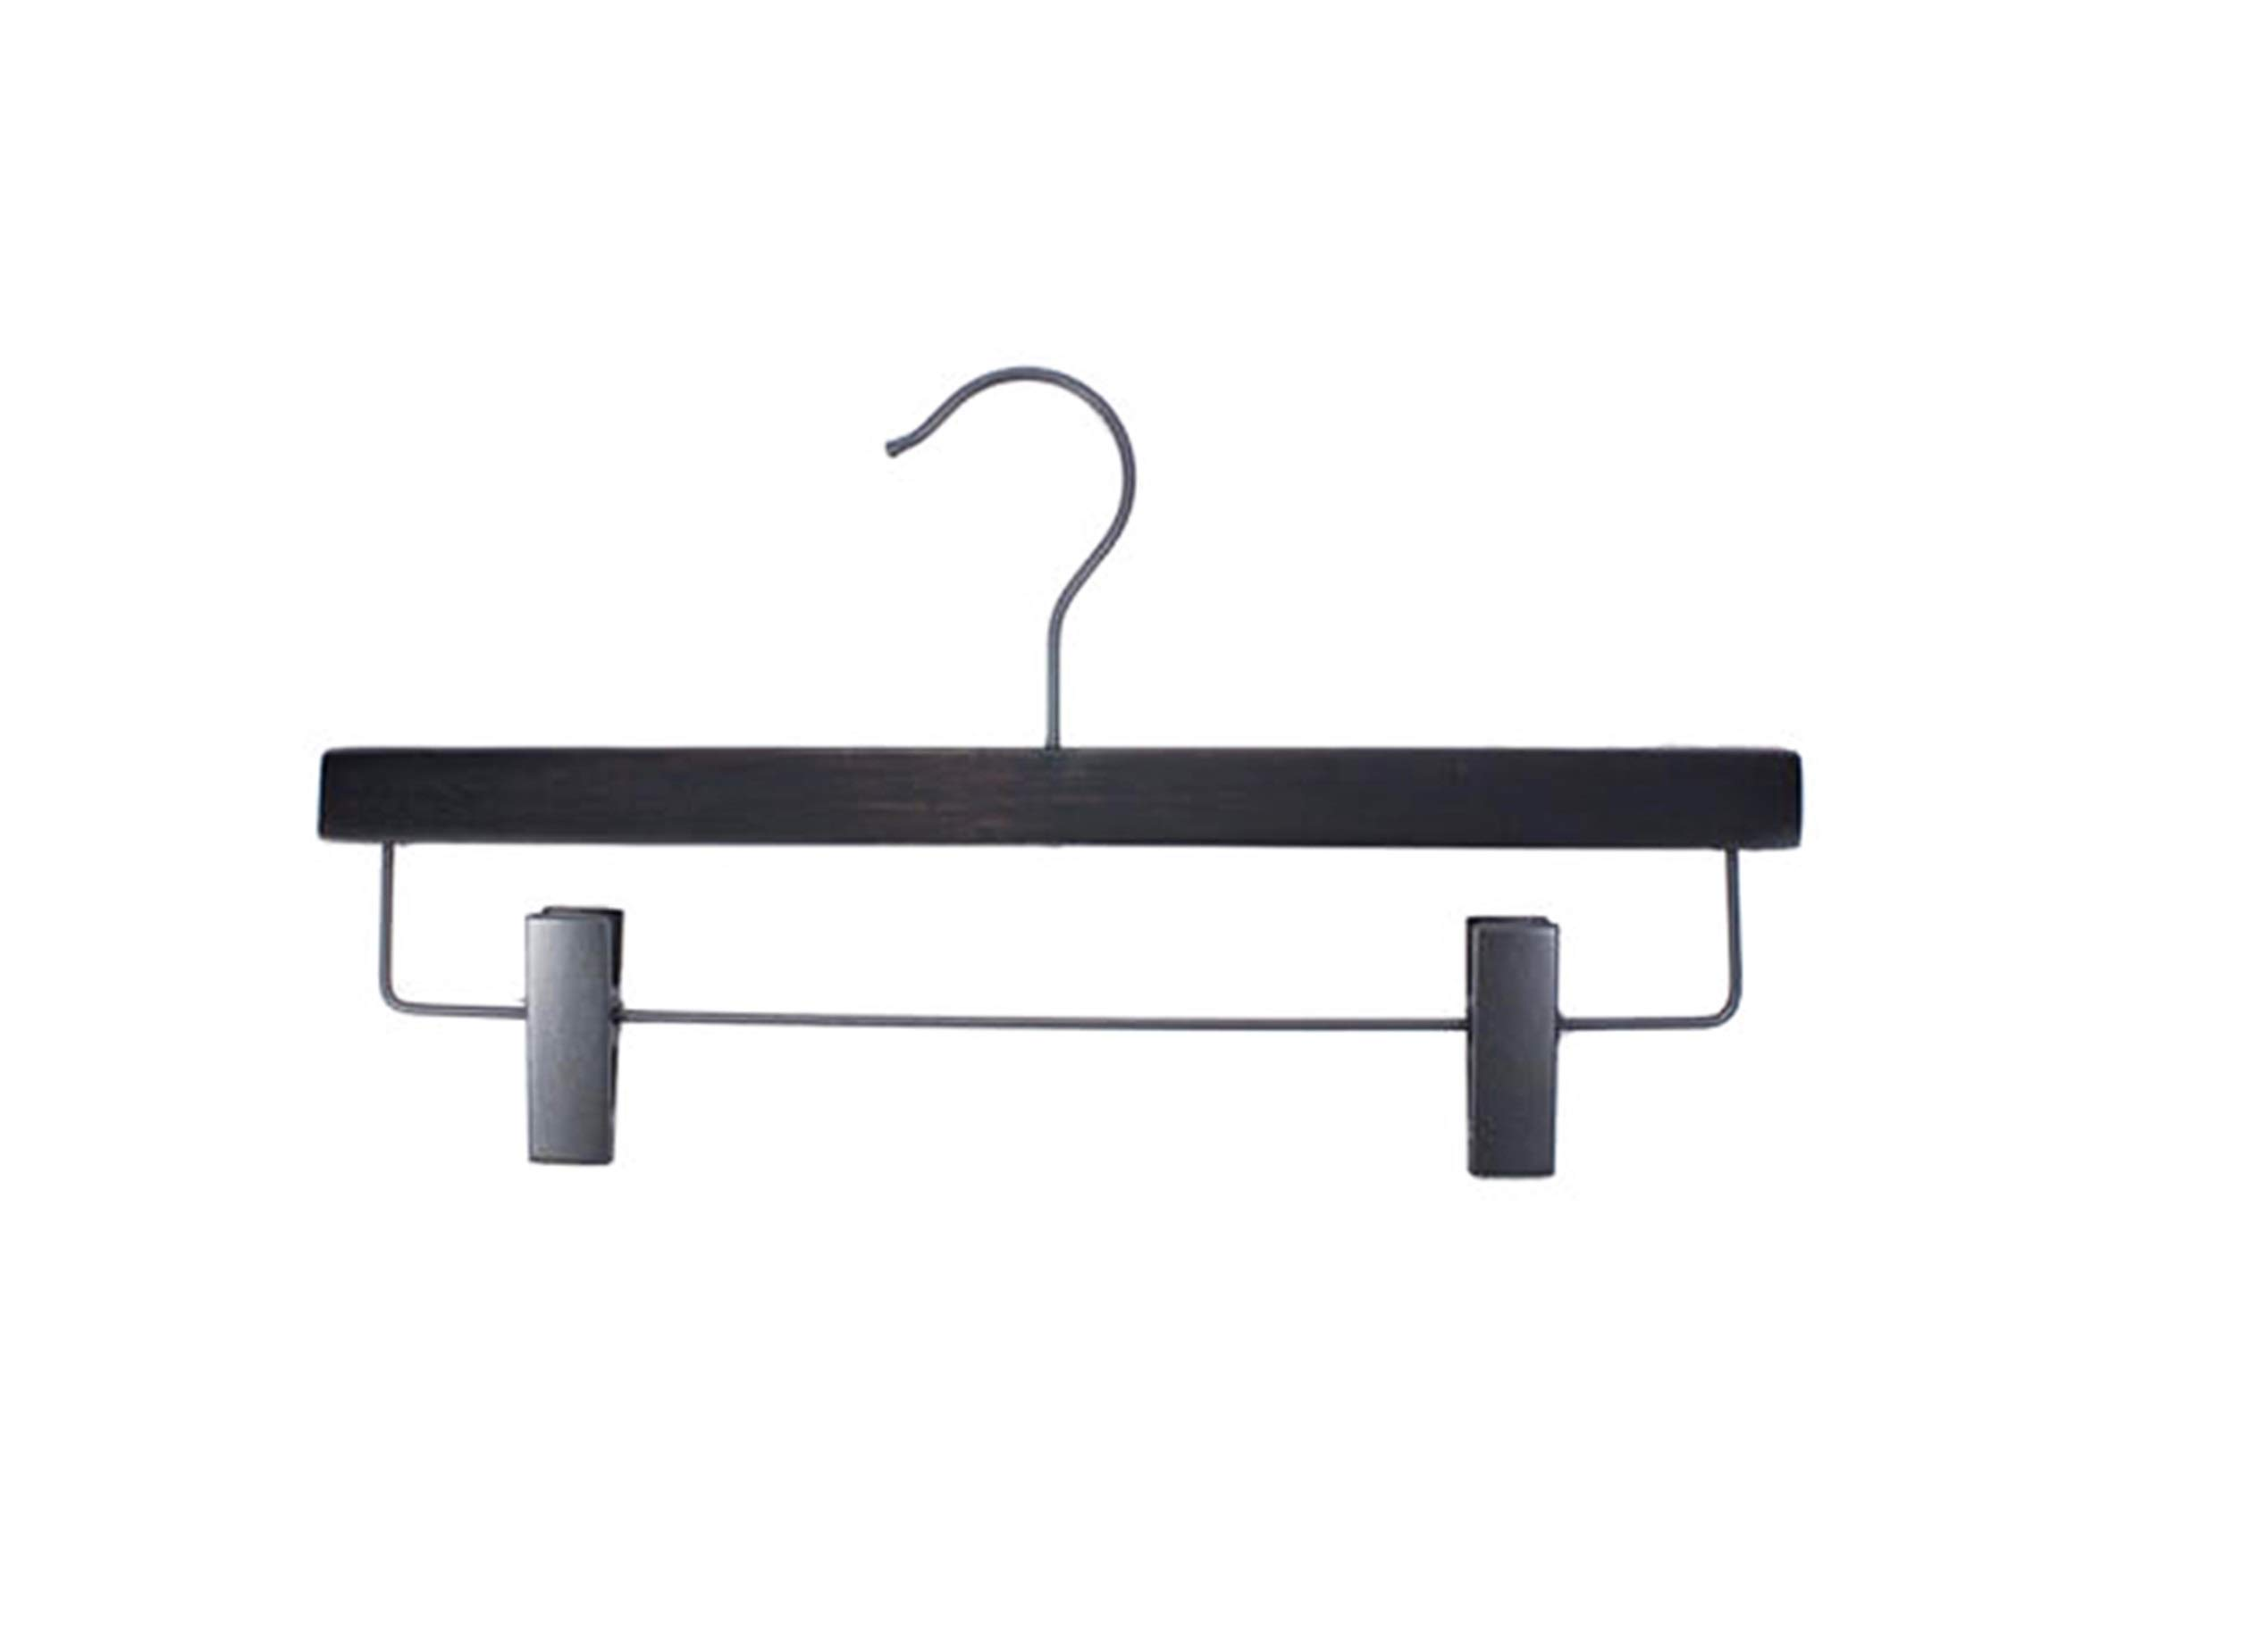 NAHANCO 20714RC Wooden Pant/Skirt Hanger, 14'', Low Gloss Espresso Finish (Pack of 100)